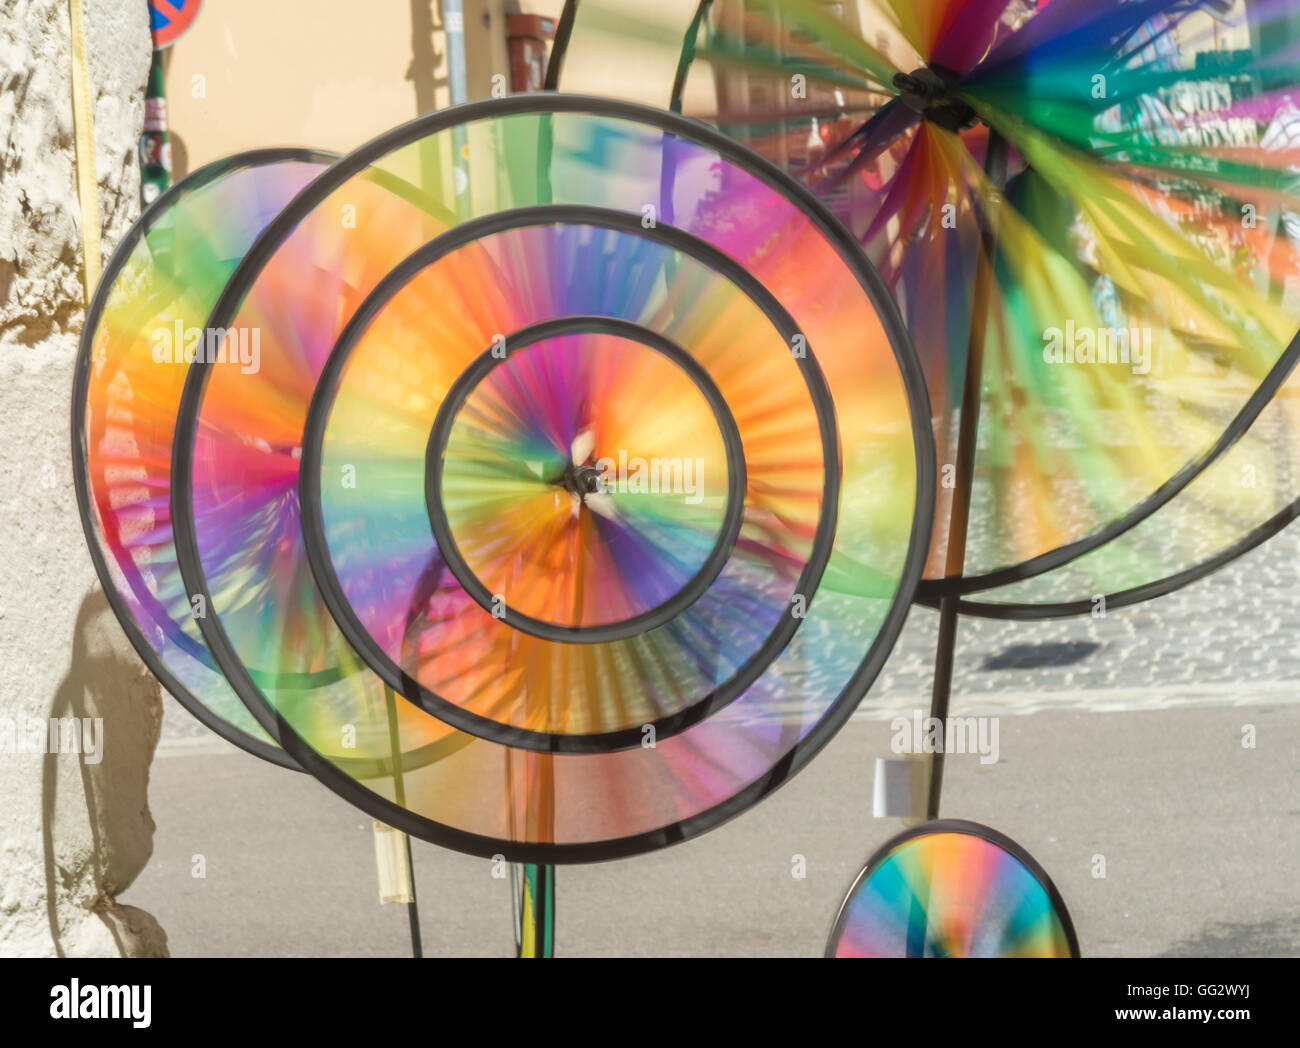 Closeup of spinning colored wind wheels outdoor - Stock Image